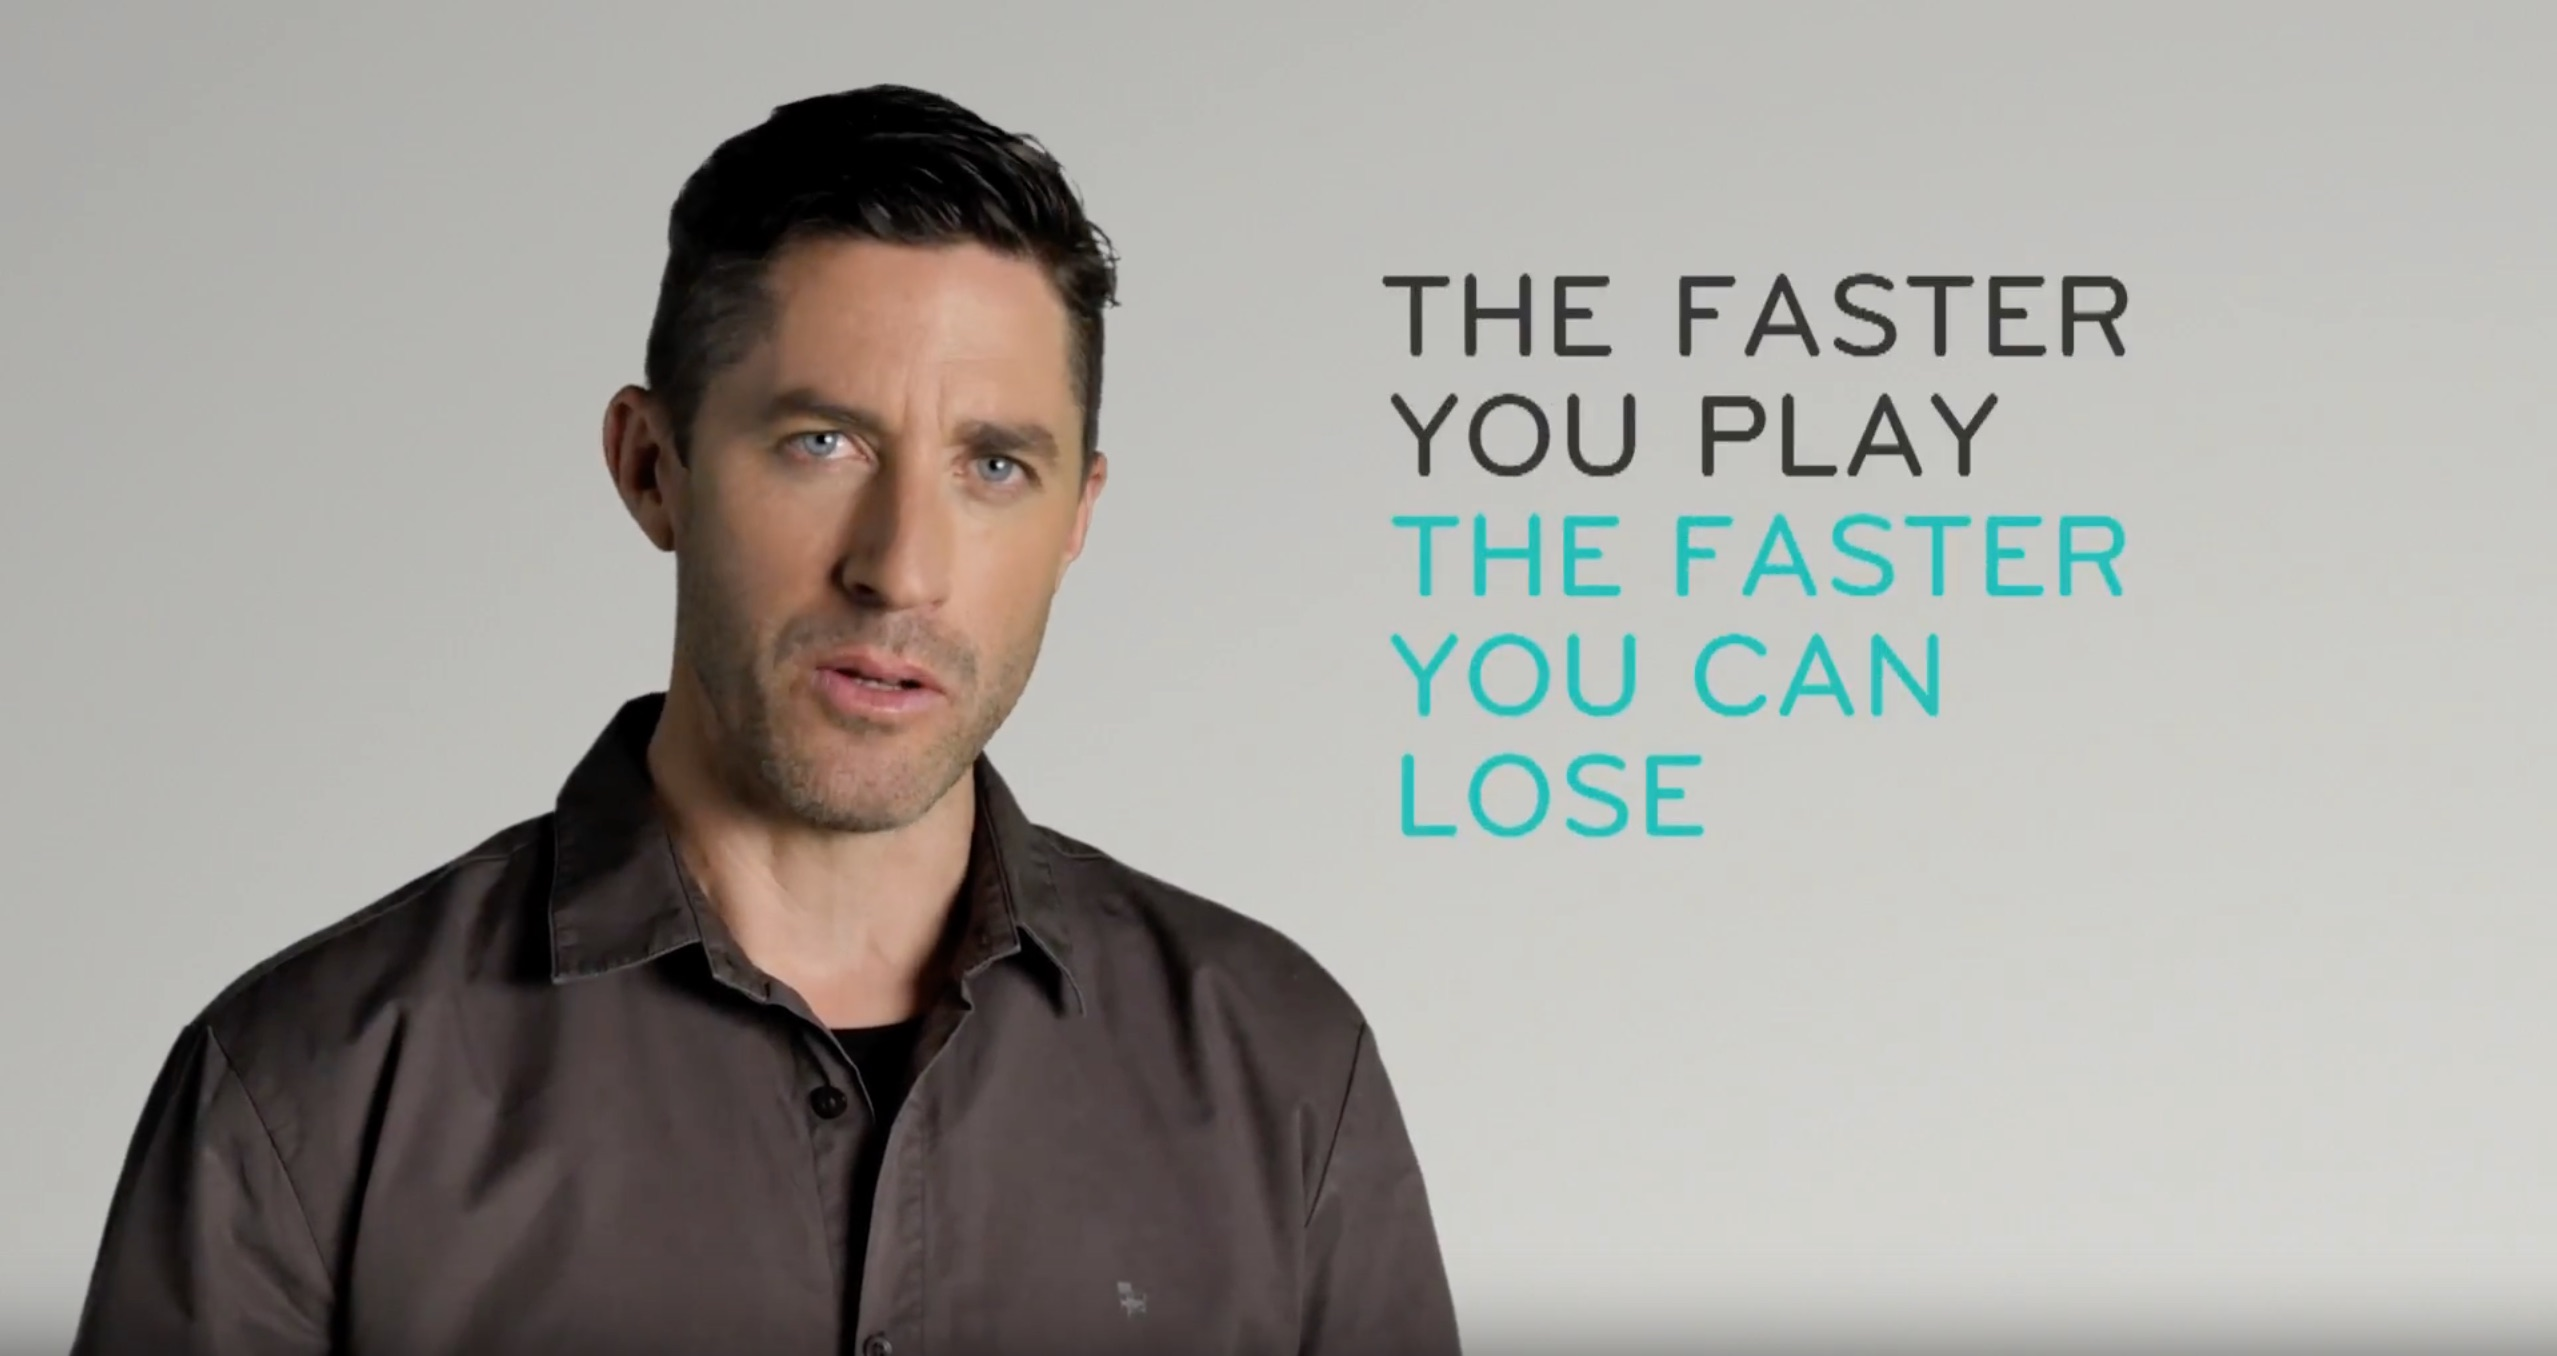 The faster you play, the faster you can lose